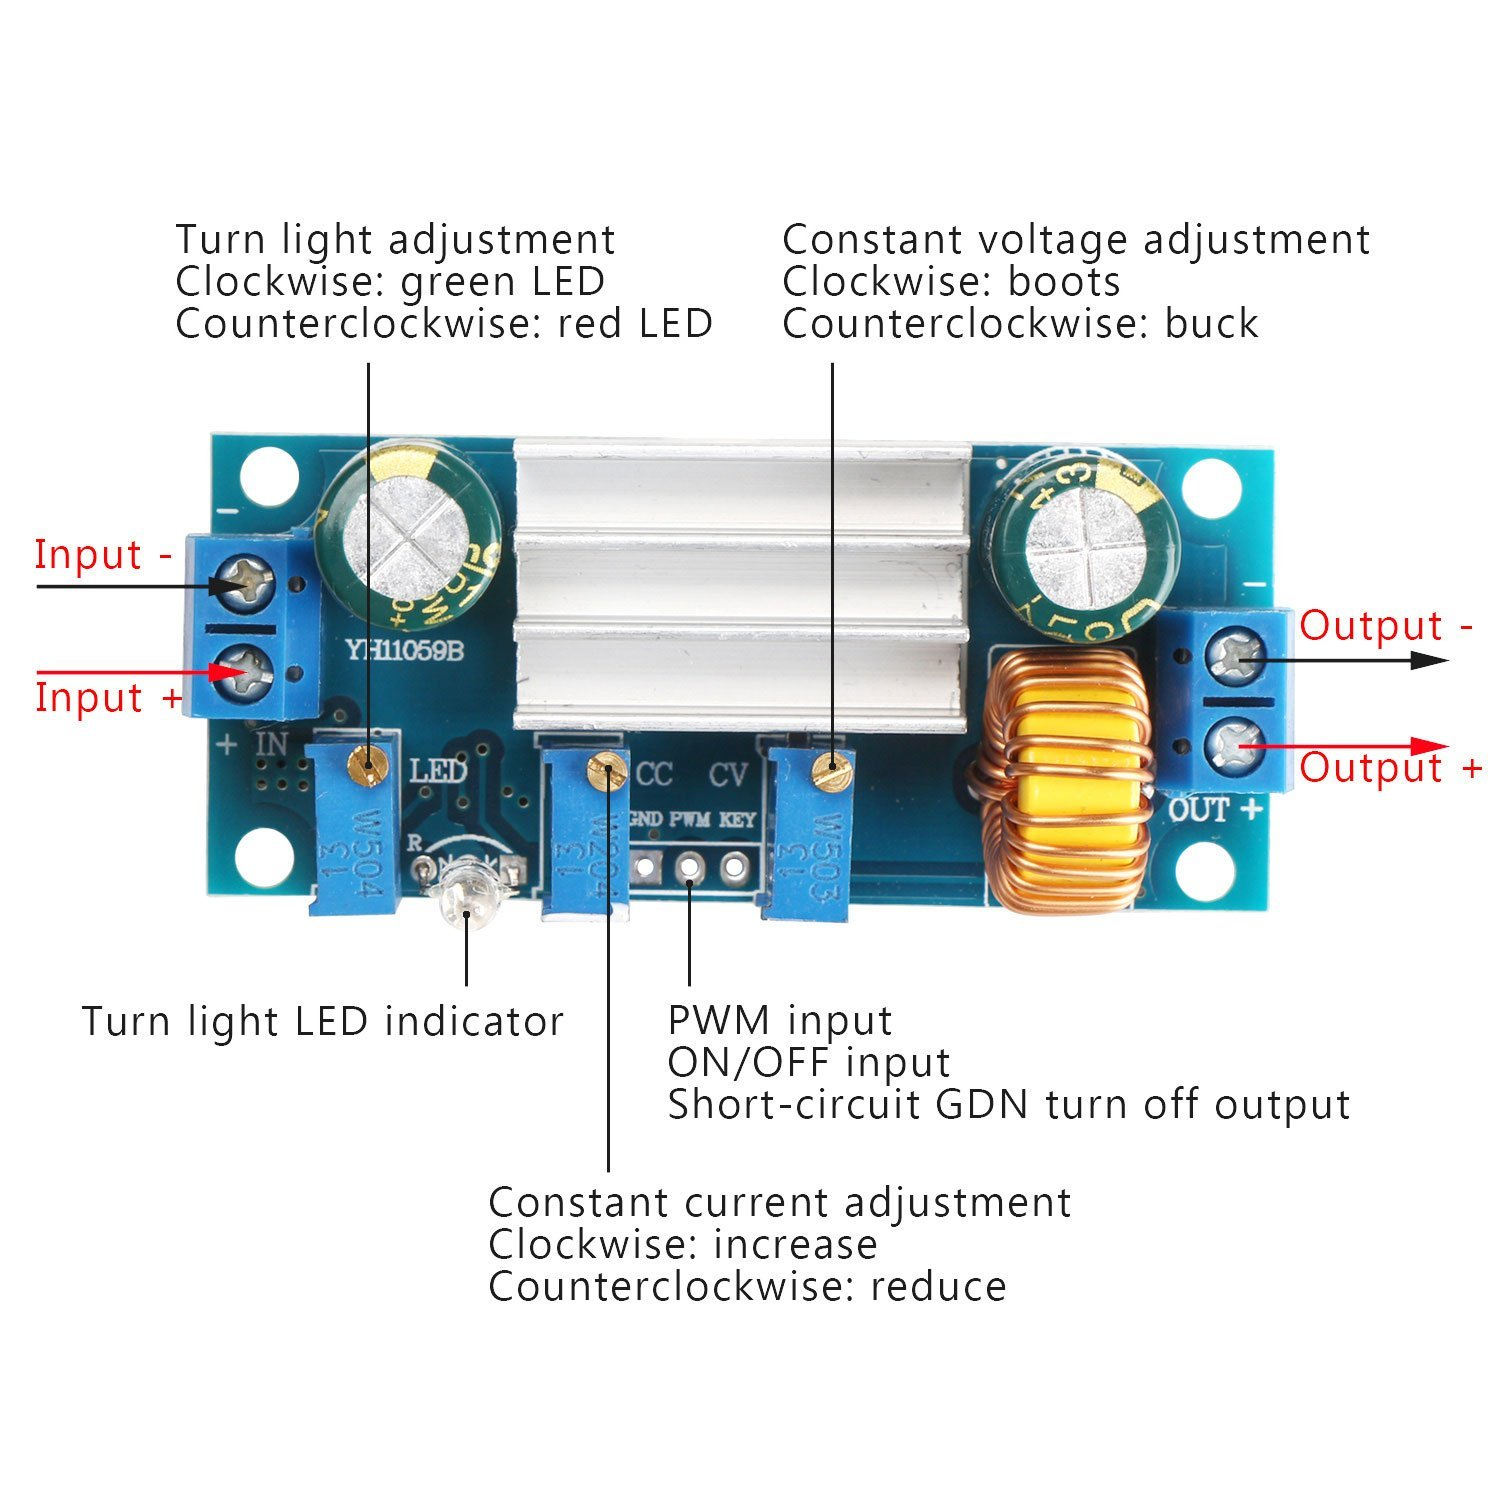 Drok Dc Dc45 30v To 08 Constant Voltage And Current Buck Boost With Output 12v Electronics Forum Circuits Projects Converter 5v 5a Step Down Regulator Module Board Led Driver Power Transformer